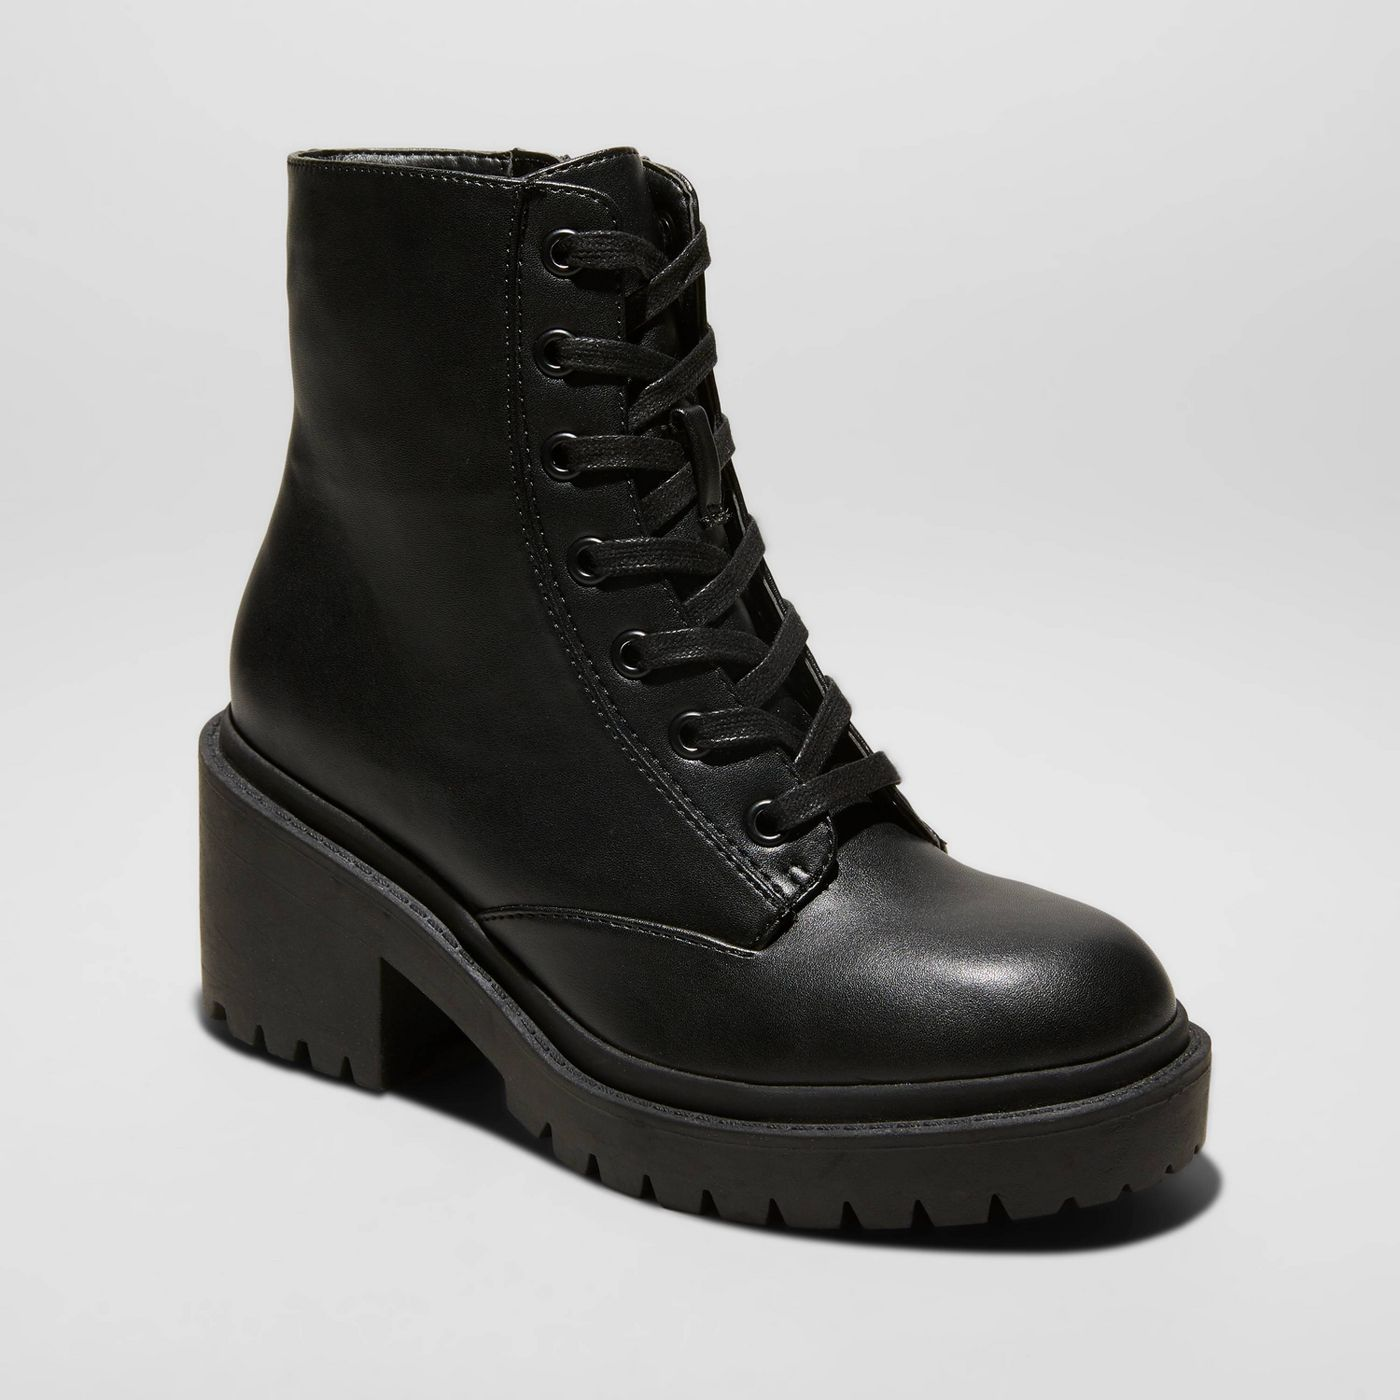 Black combat boot for all 2019 that is budget friendly and perfect for Fall 2019.